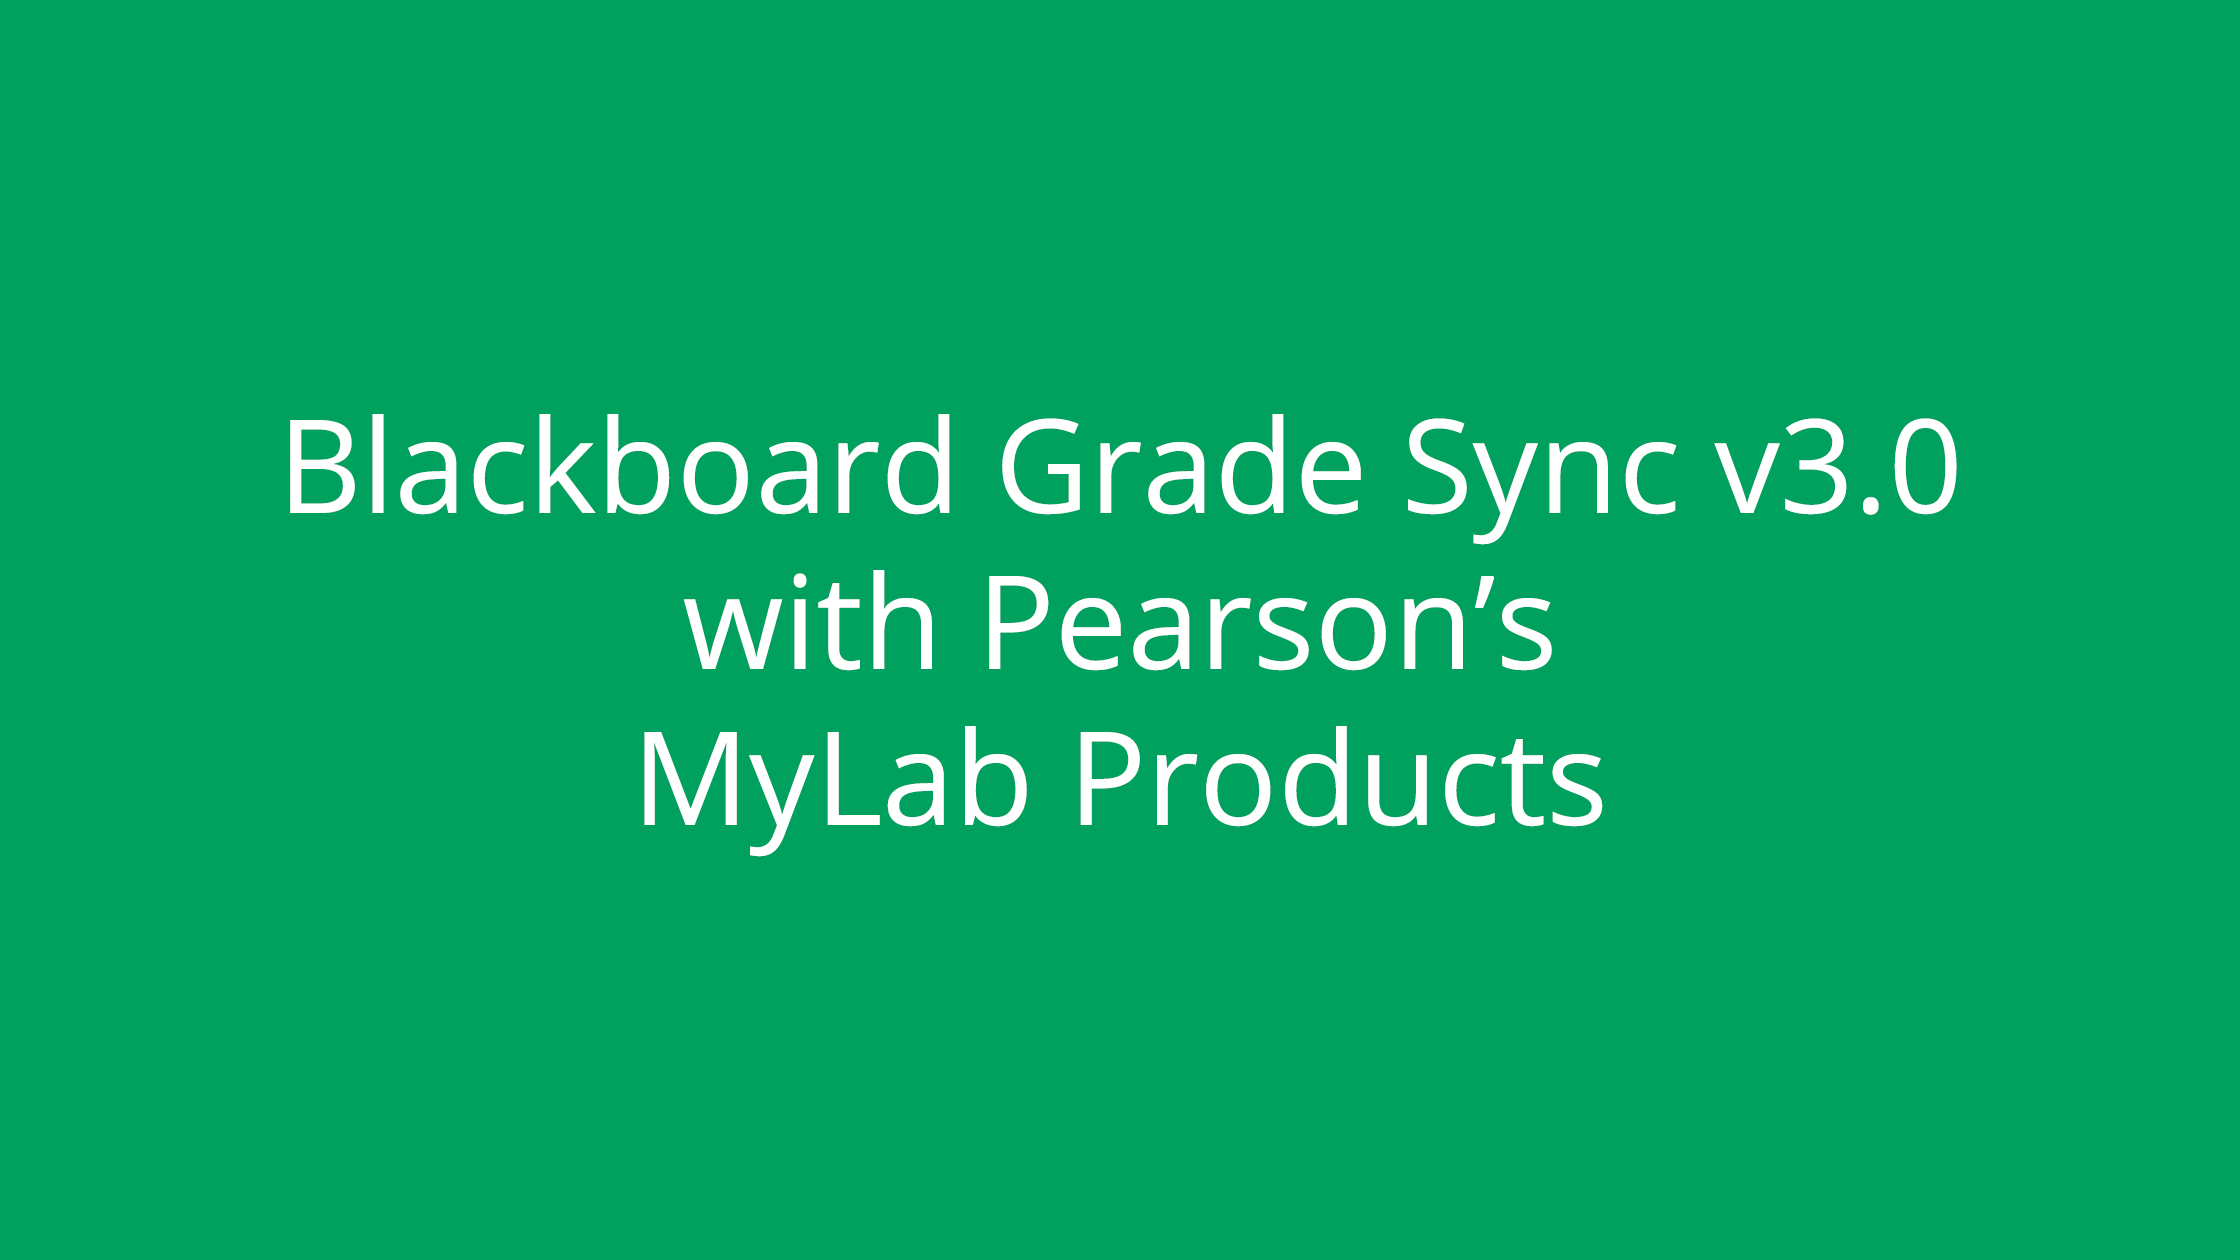 Blackboard Grade Sync v3.0 with Pearson MyLabs (XL)